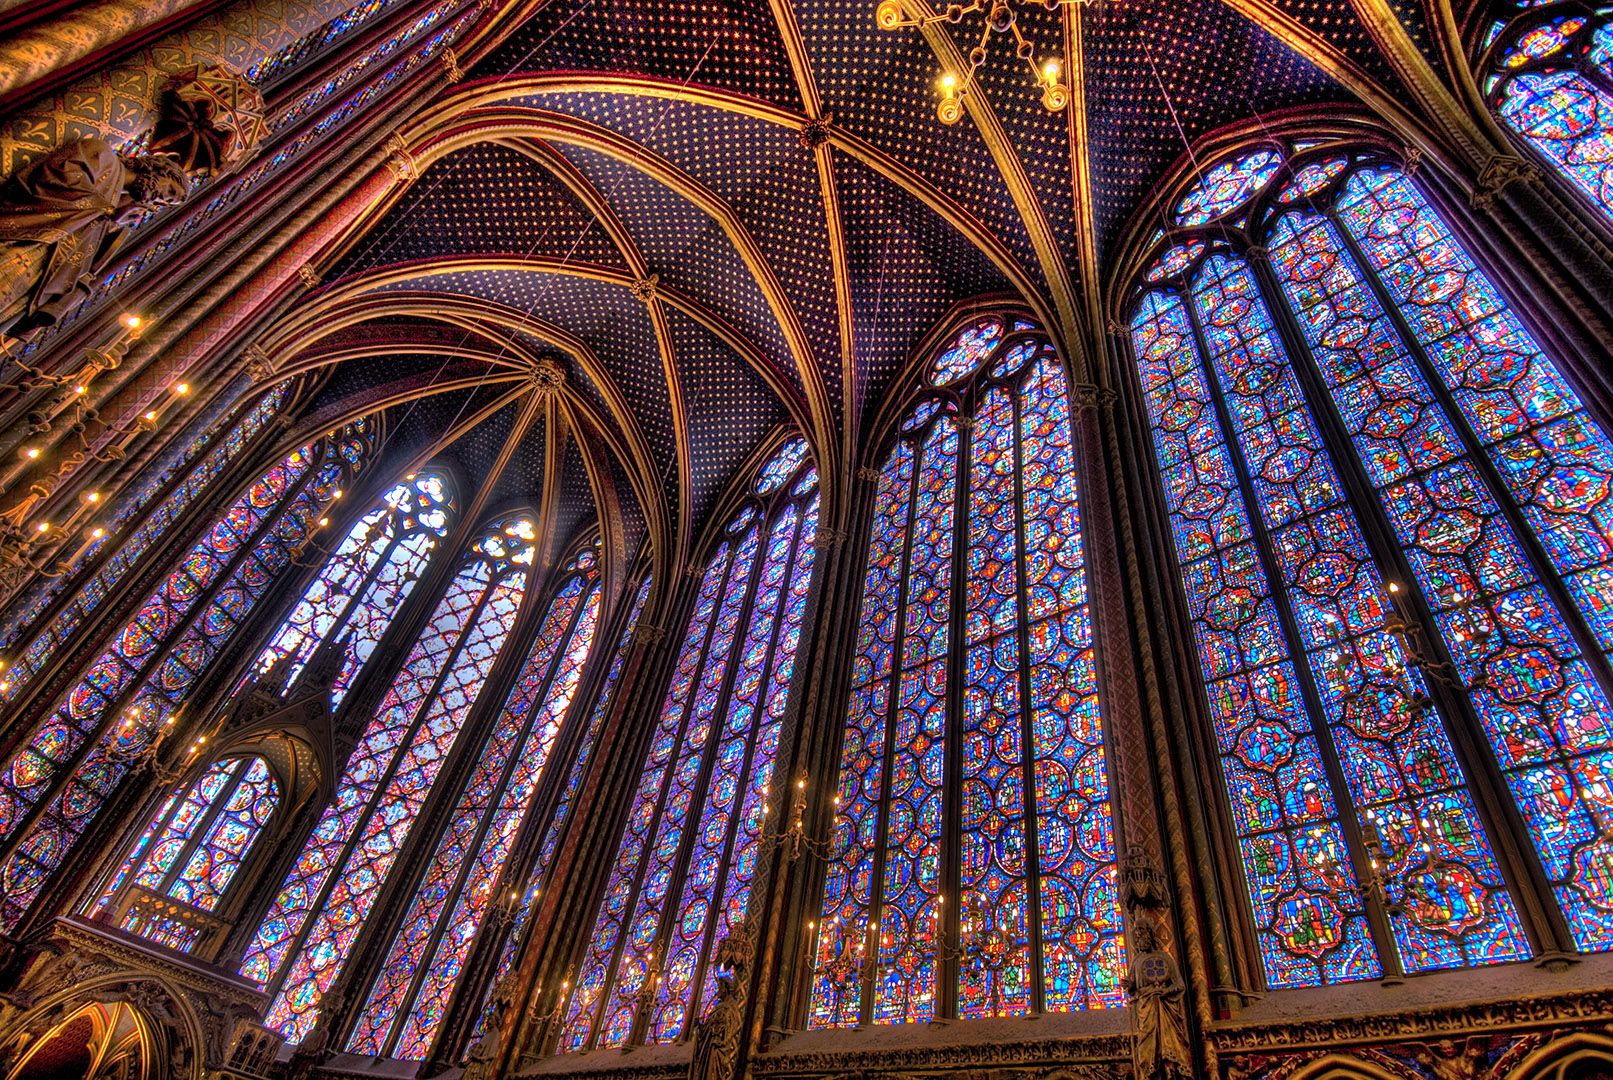 Paris: Sainte-Chapelle Stained Glass